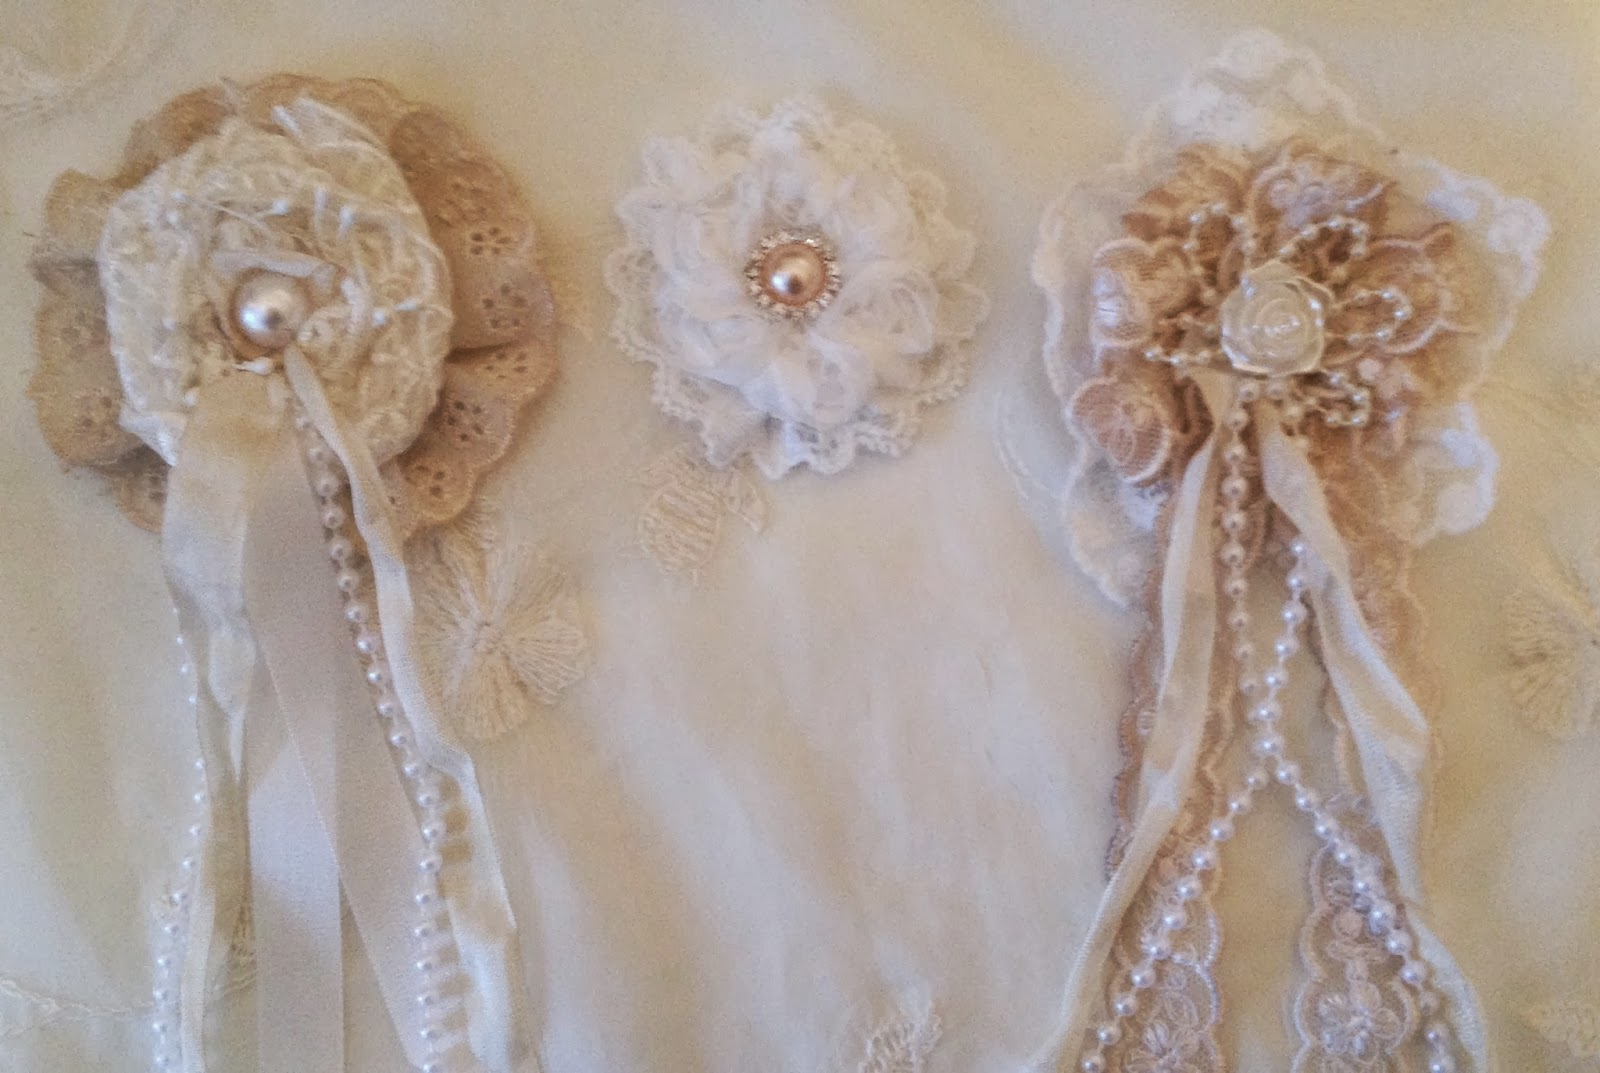 annes papercreations shabby chic lace flower tutorial woc design team project. Black Bedroom Furniture Sets. Home Design Ideas